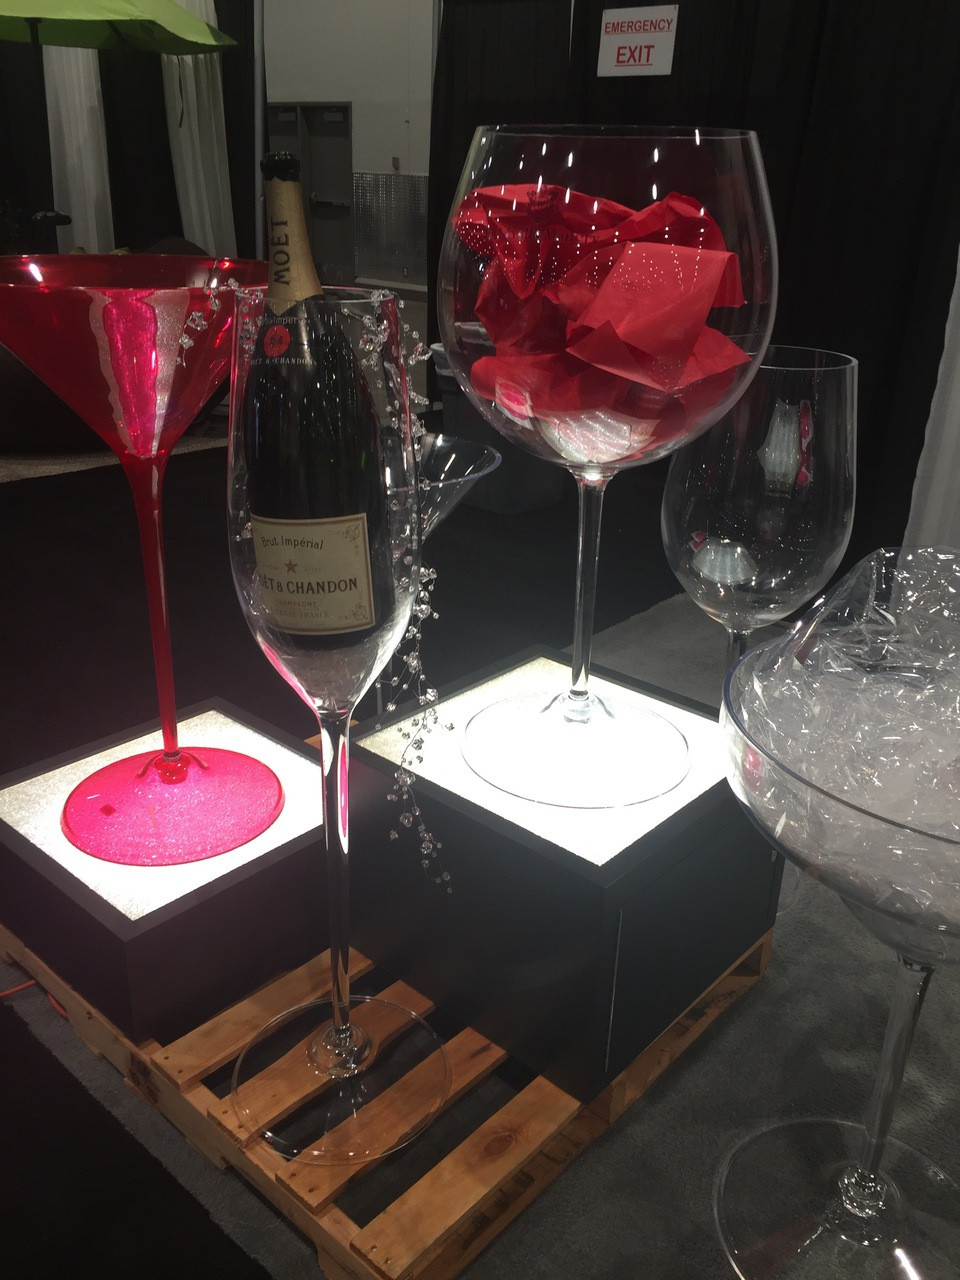 HUGE DRINK CUPS - MARTINI CUP &  WINE GLASS